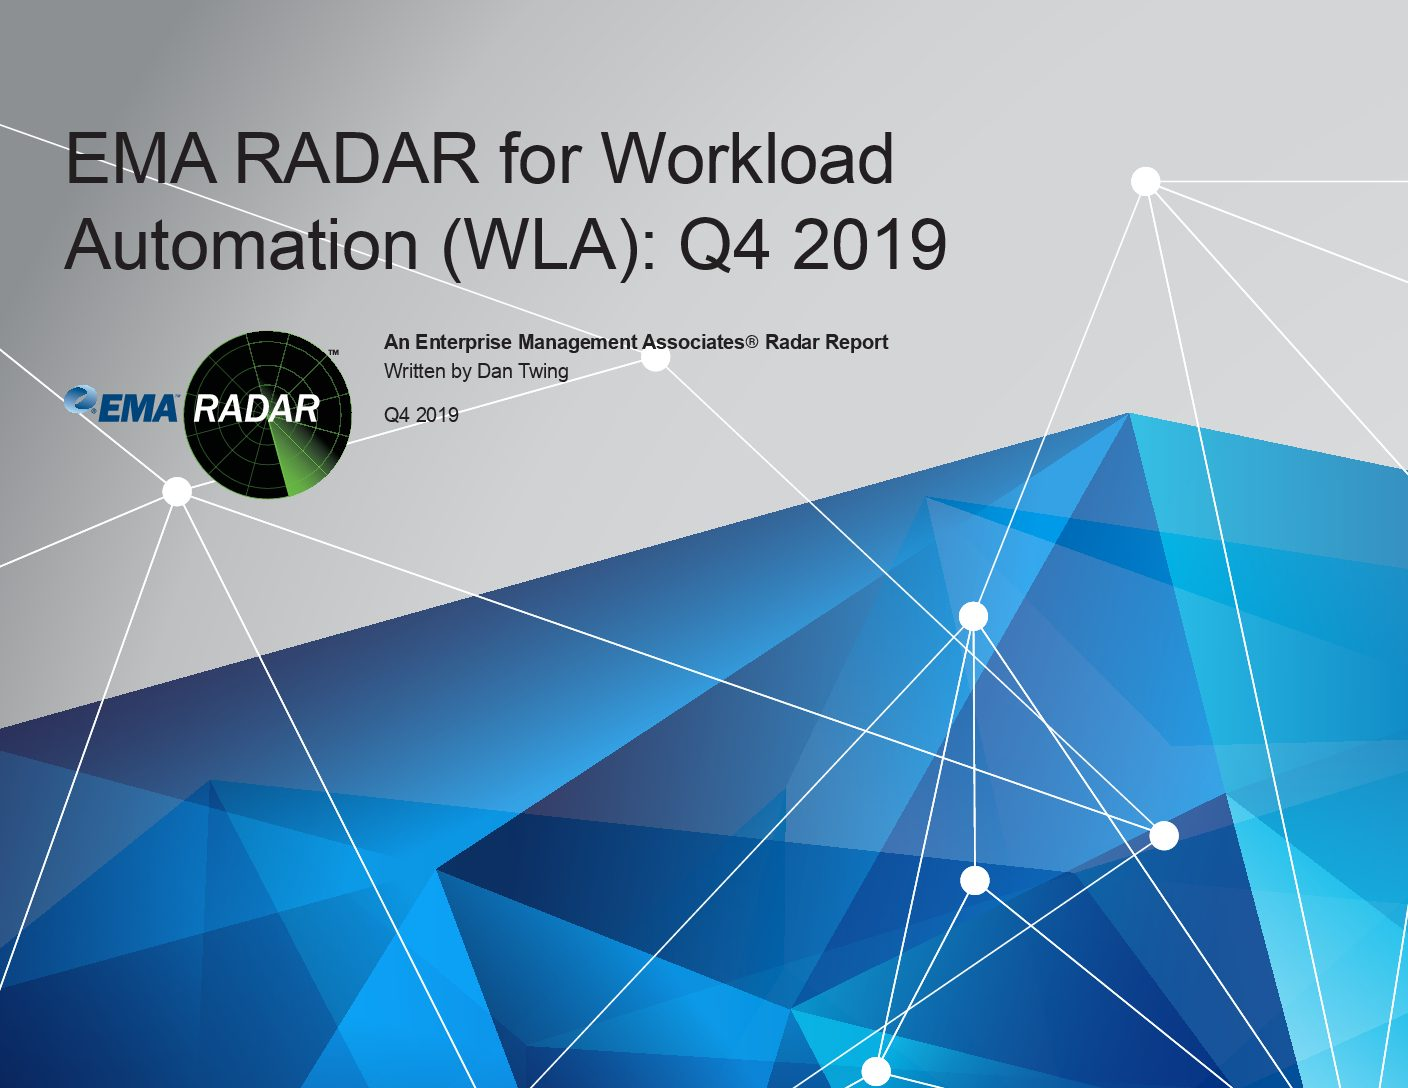 EMA RADAR for Workload Automation (WLA): Q4 2019